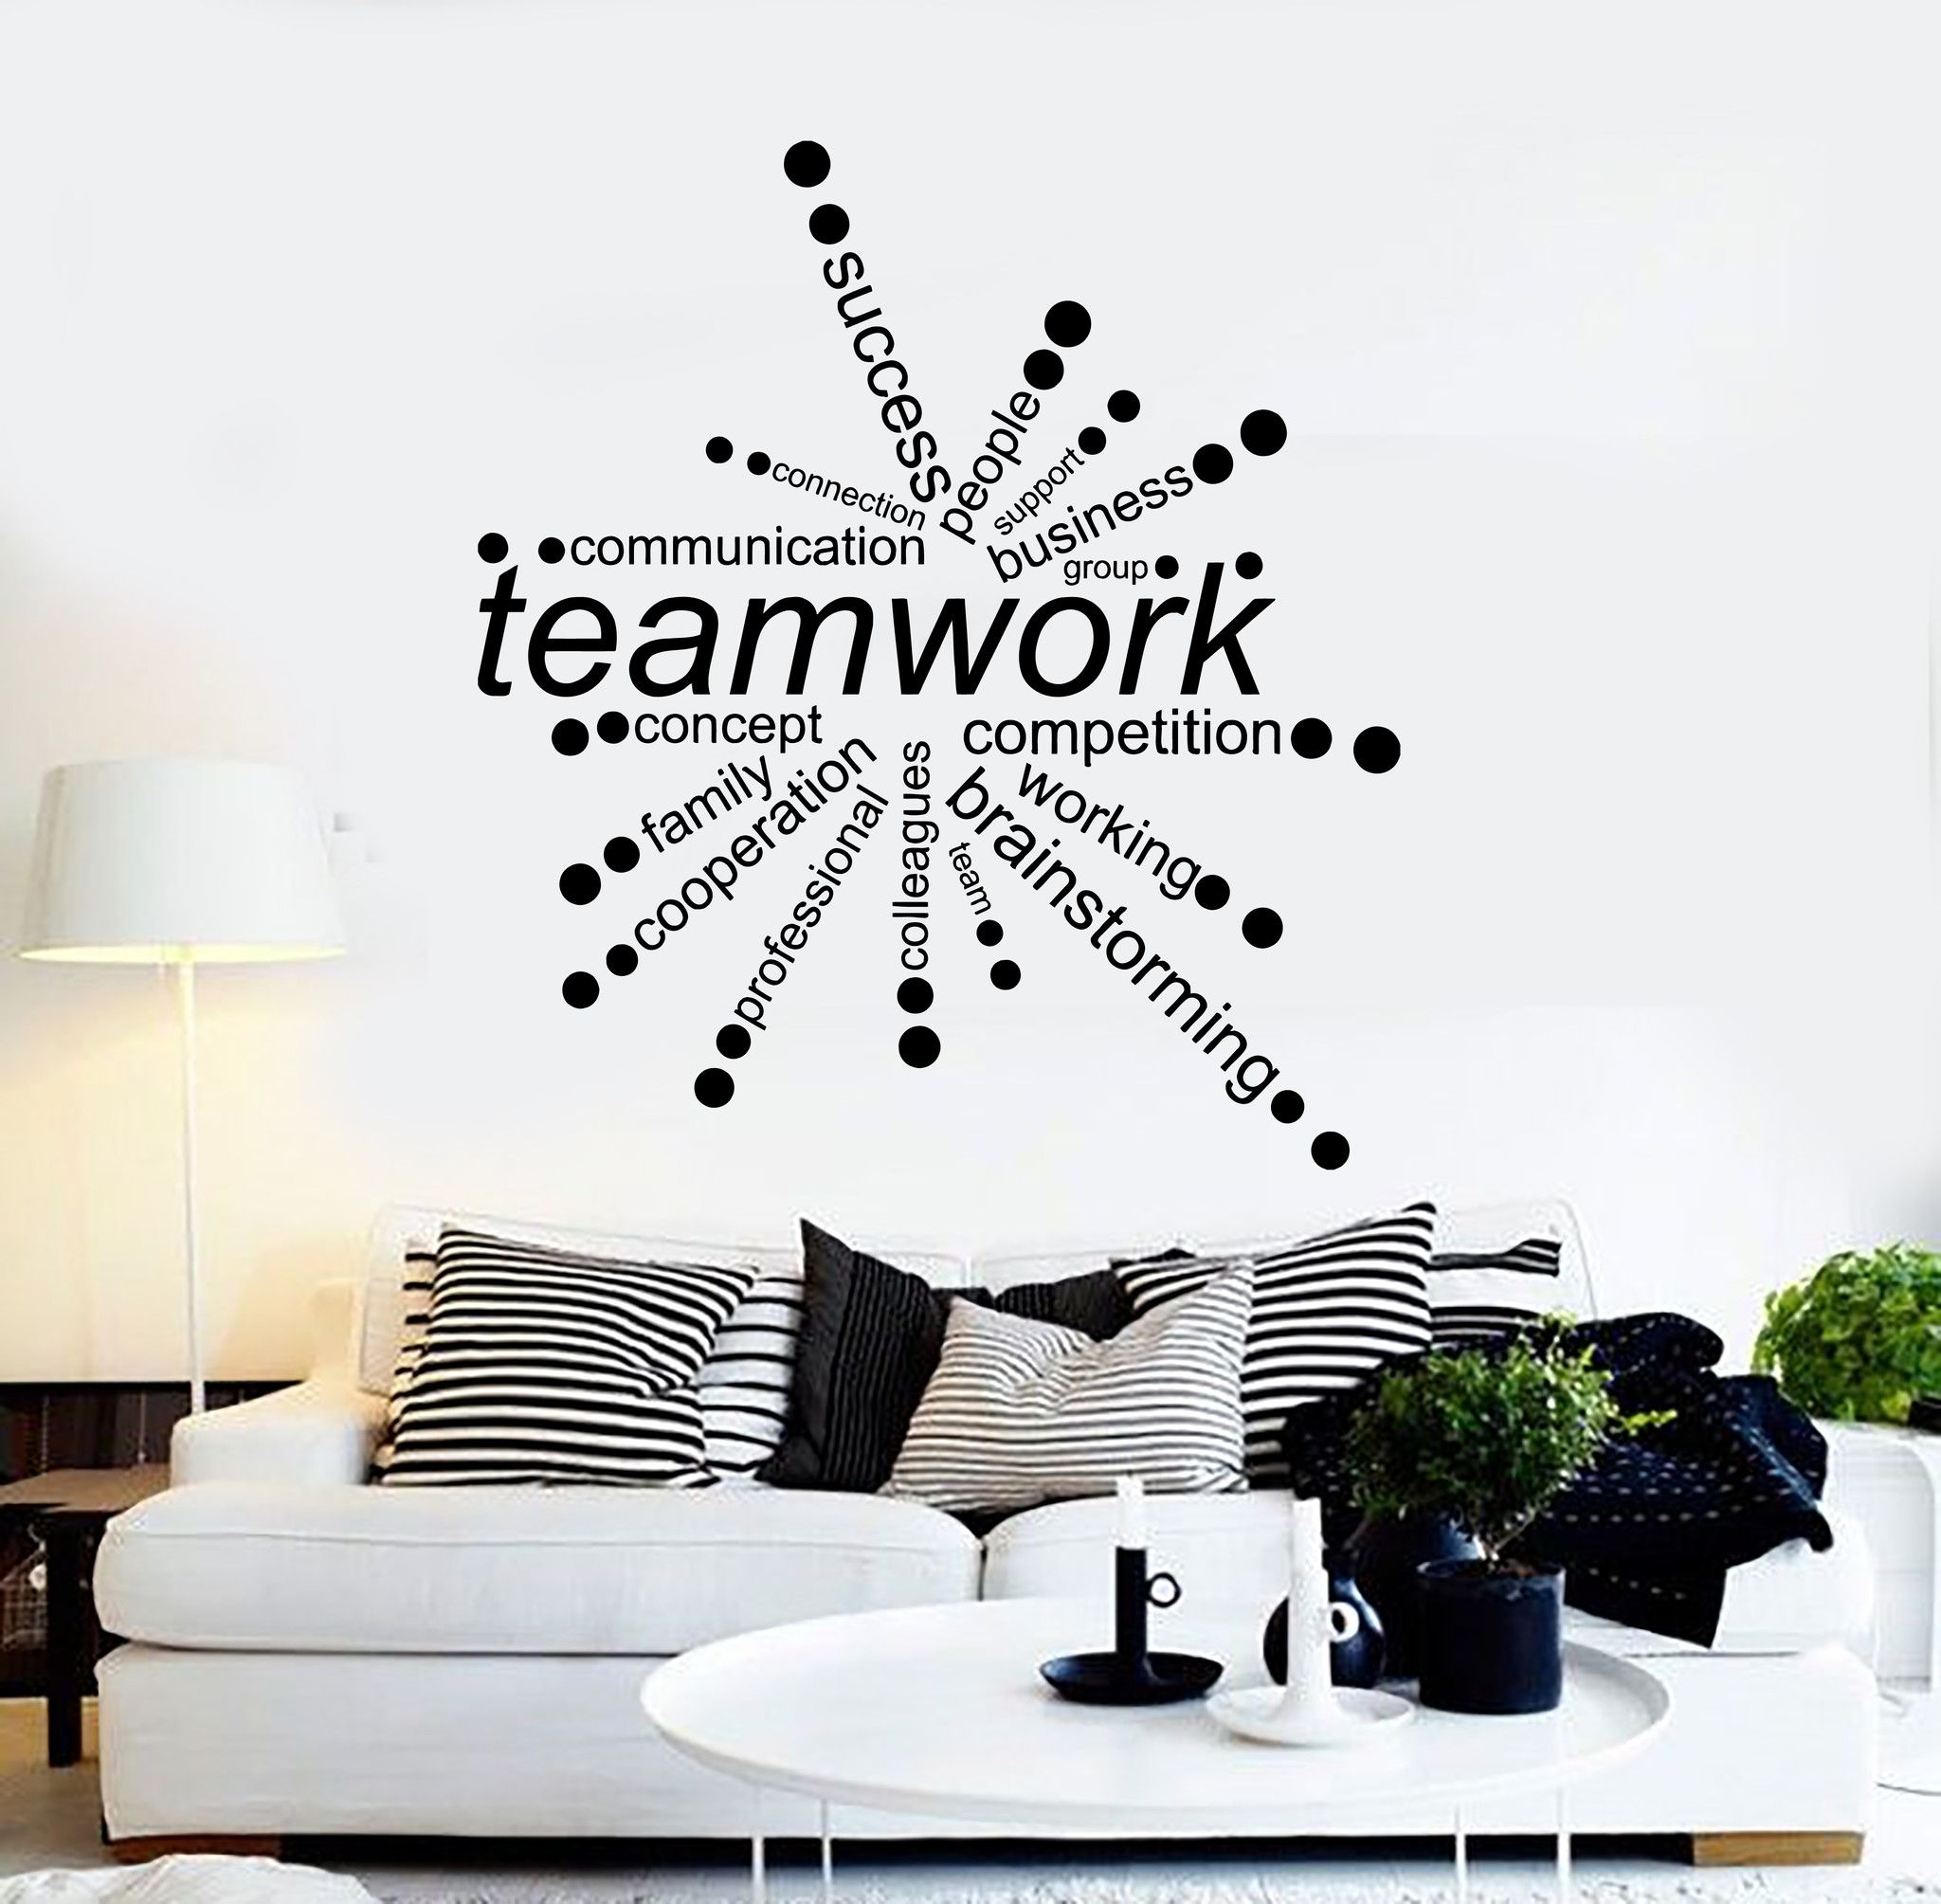 Wall Decorations For Office Luxury Vinyl Wall Decal Teamwork Words With Current Vinyl Wall Accents (View 15 of 15)